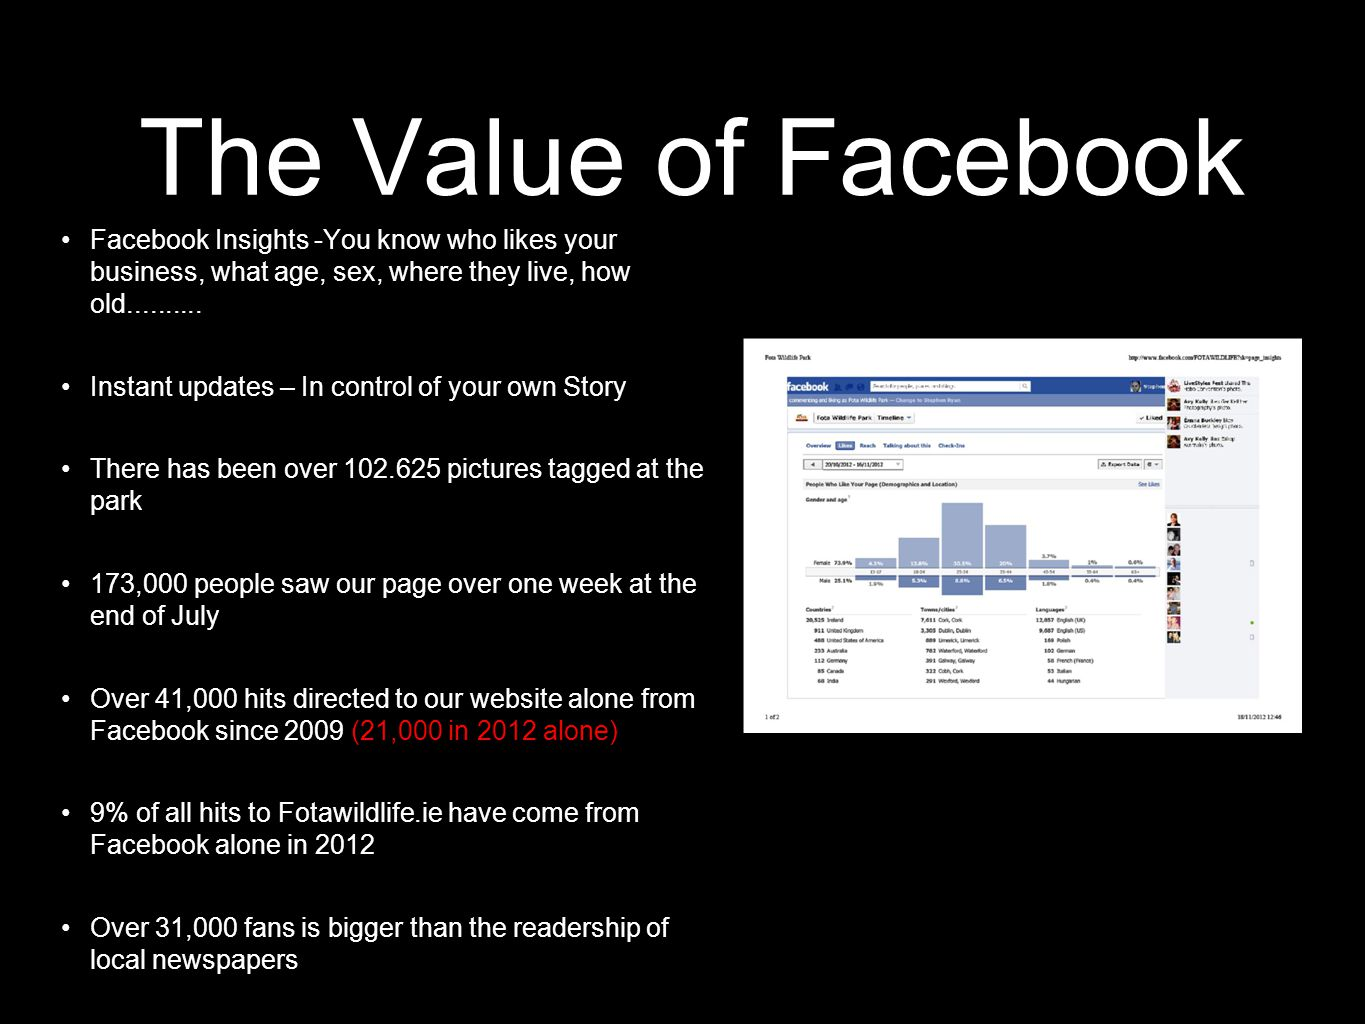 The Value of Facebook Facebook Insights -You know who likes your business, what age, sex, where they live, how old